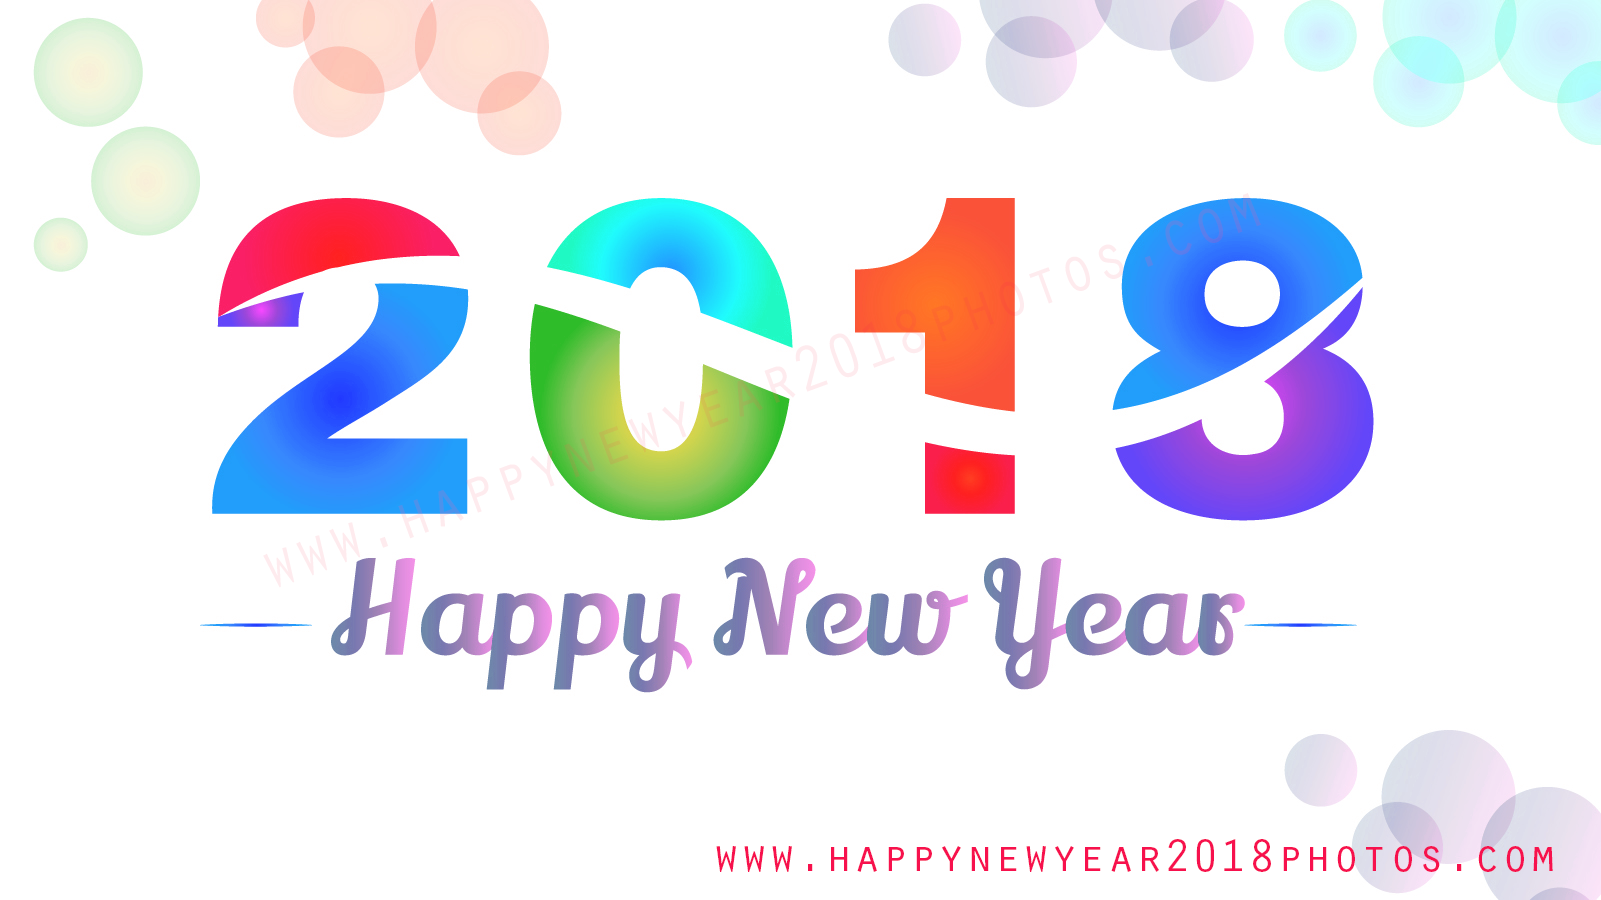 Happy New Year 2018 PNG - 85009